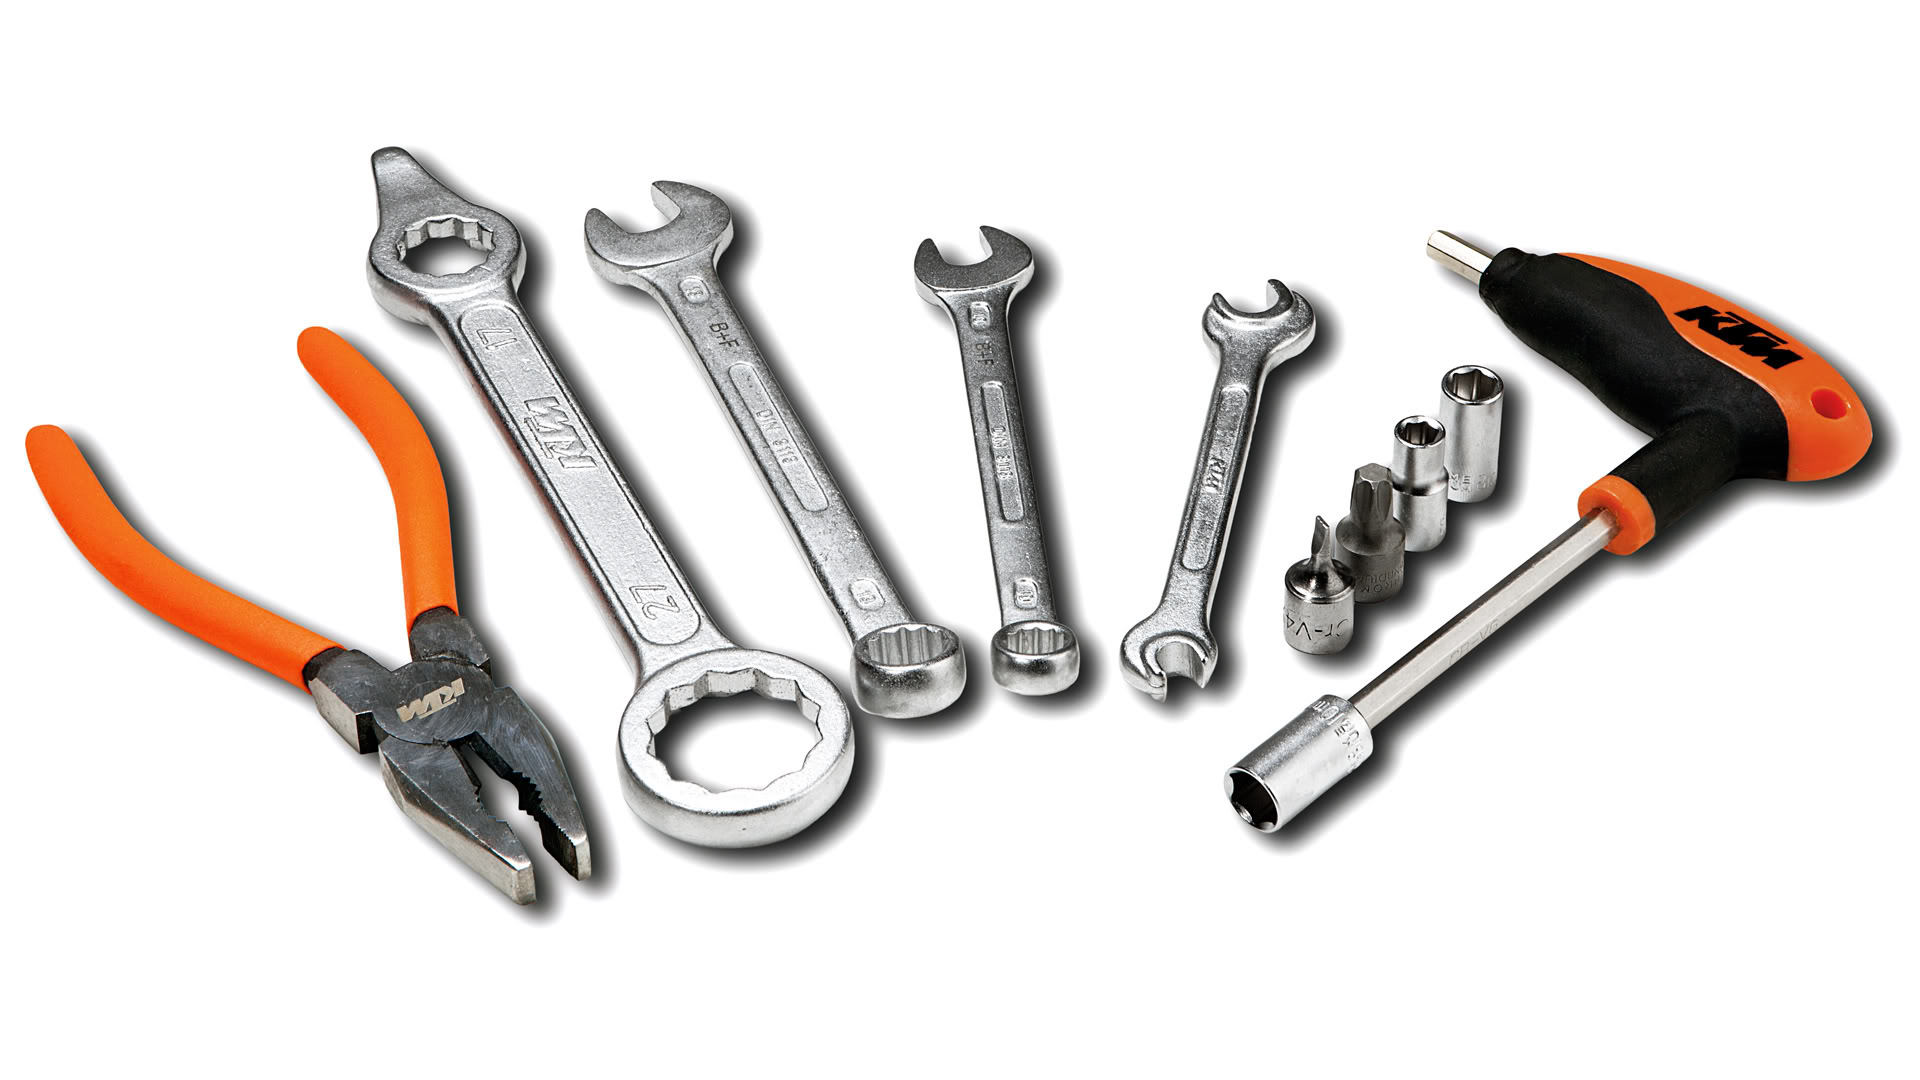 Tools Wallpaper - WallpaperSafari